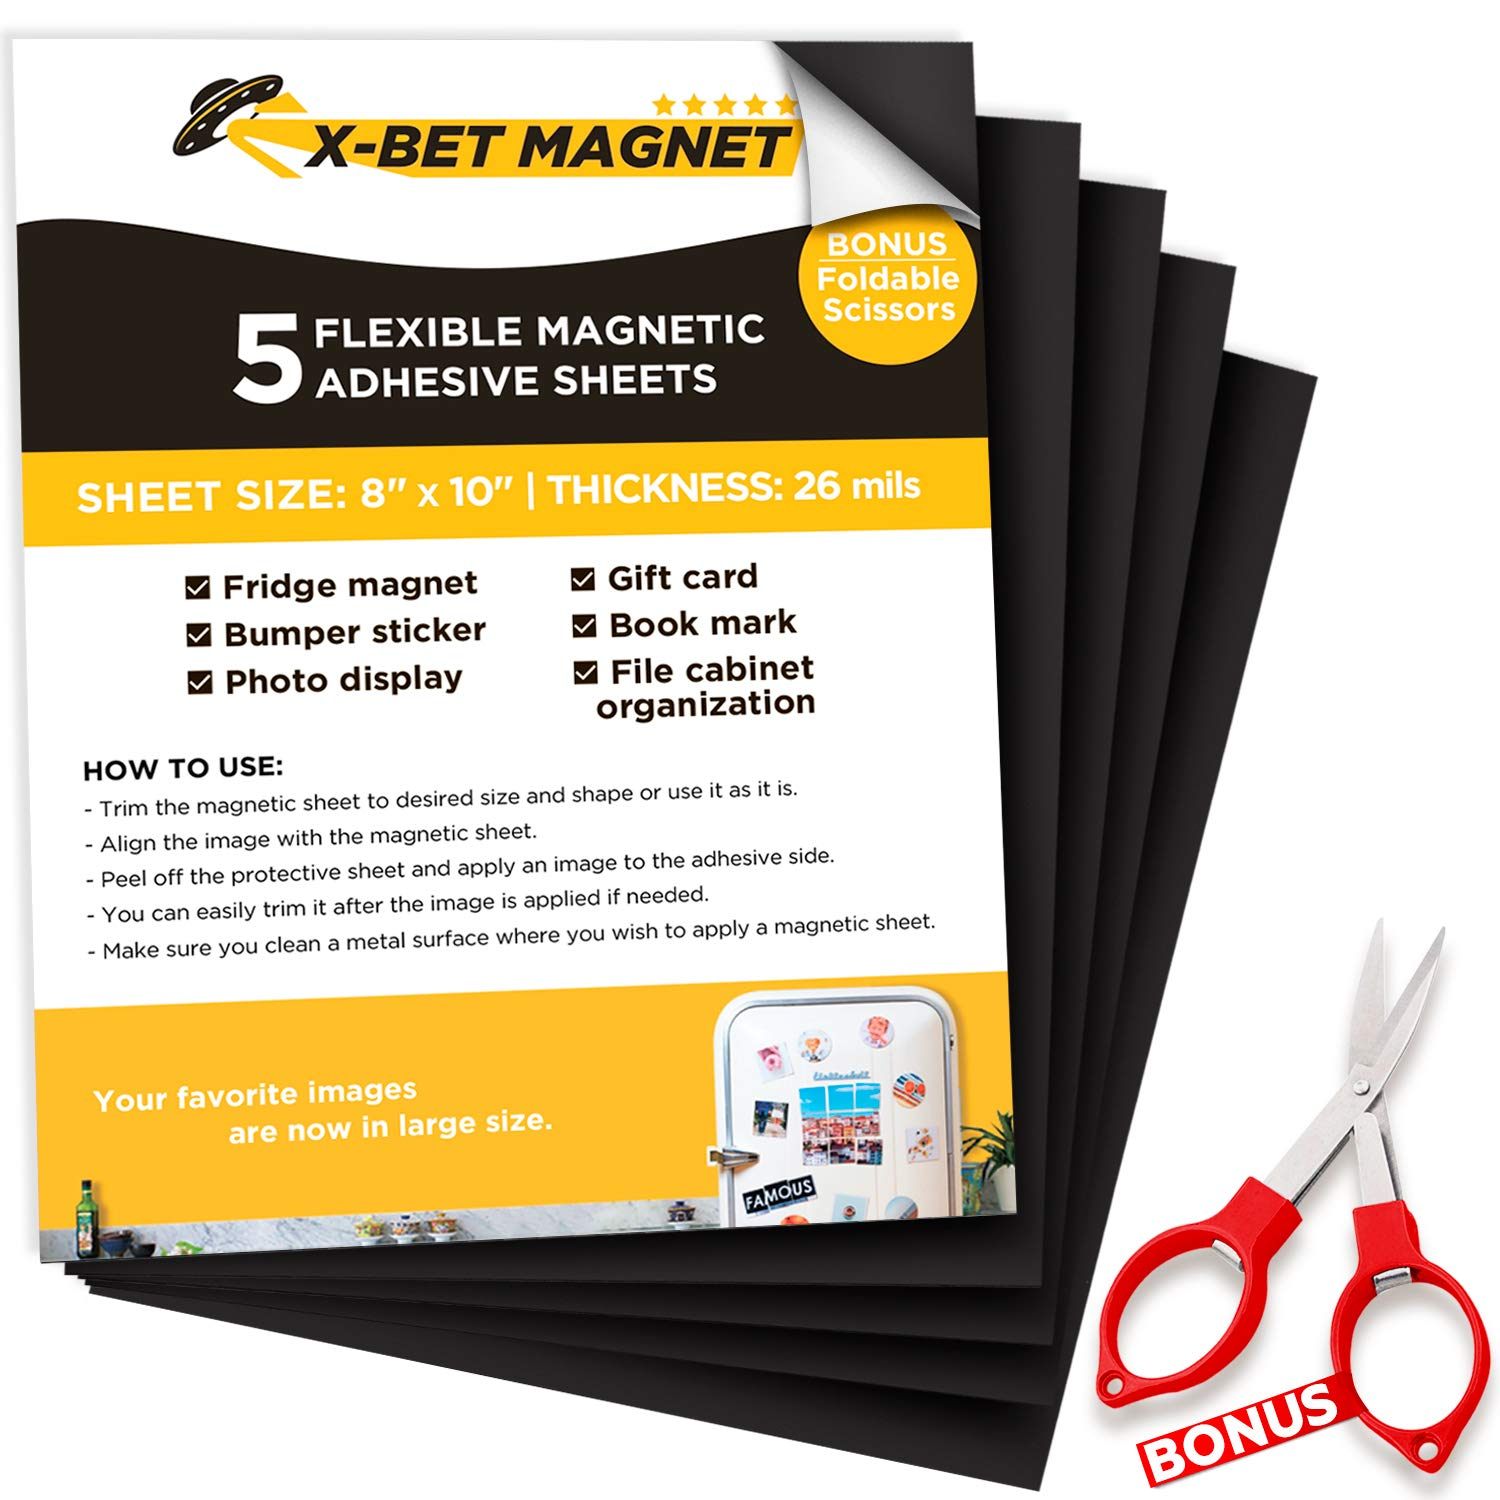 "Magnetic Sheets with Adhesive Backing - 5 PCs Each 8"" x 10"" - Flexible Magnetic Paper with Strong Self Adhesive - Sticky Magnet Sheets for Photo and Picture Magnets, Stickers and Other Craft Magnets"